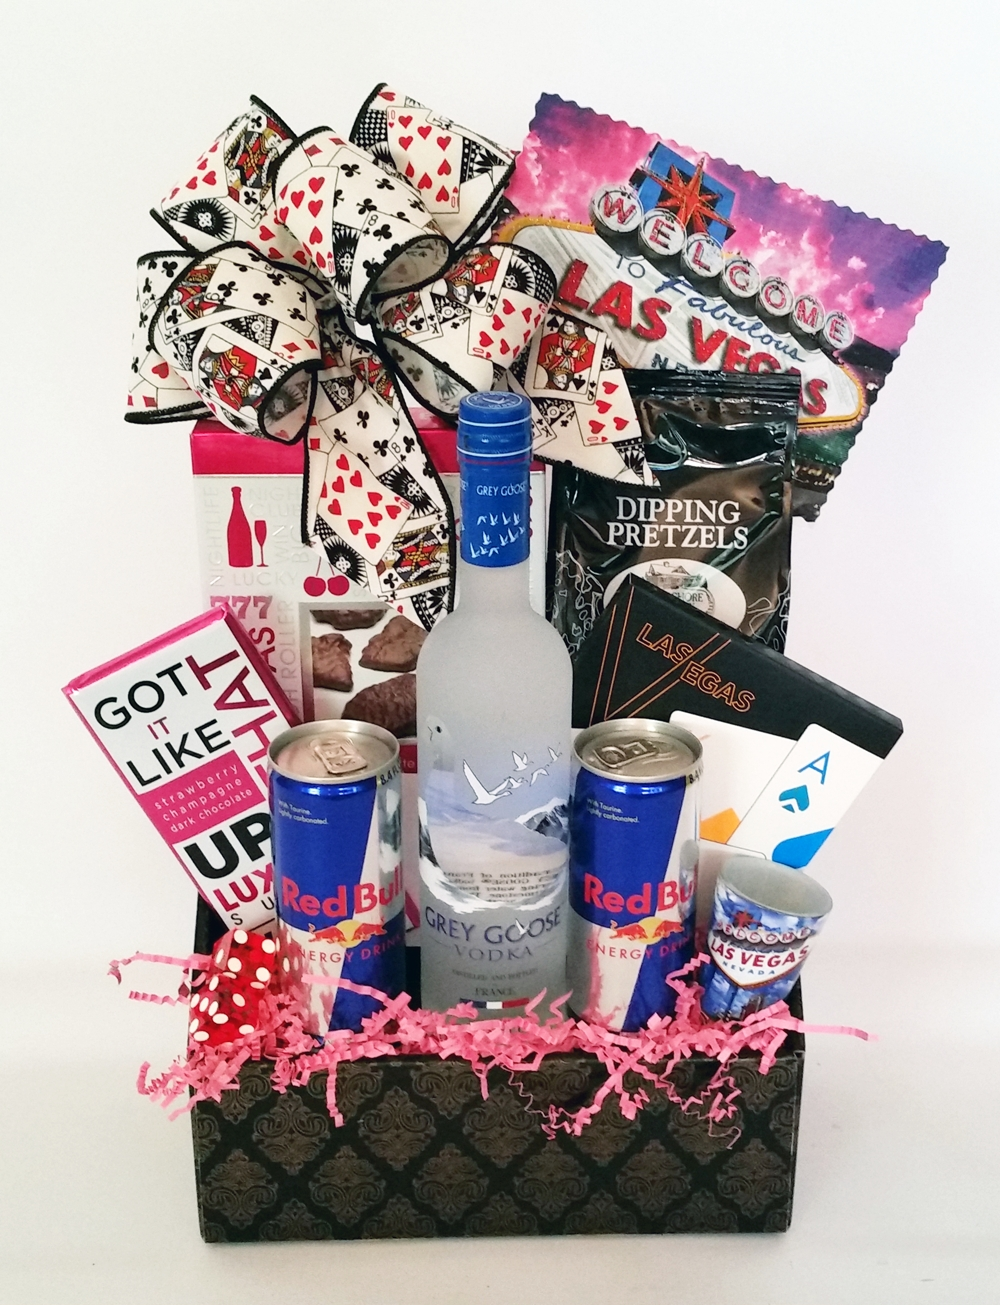 10 Lovely Girls Night Out Gift Ideas girls night out party weekend las vegas style gift basket just add 2020